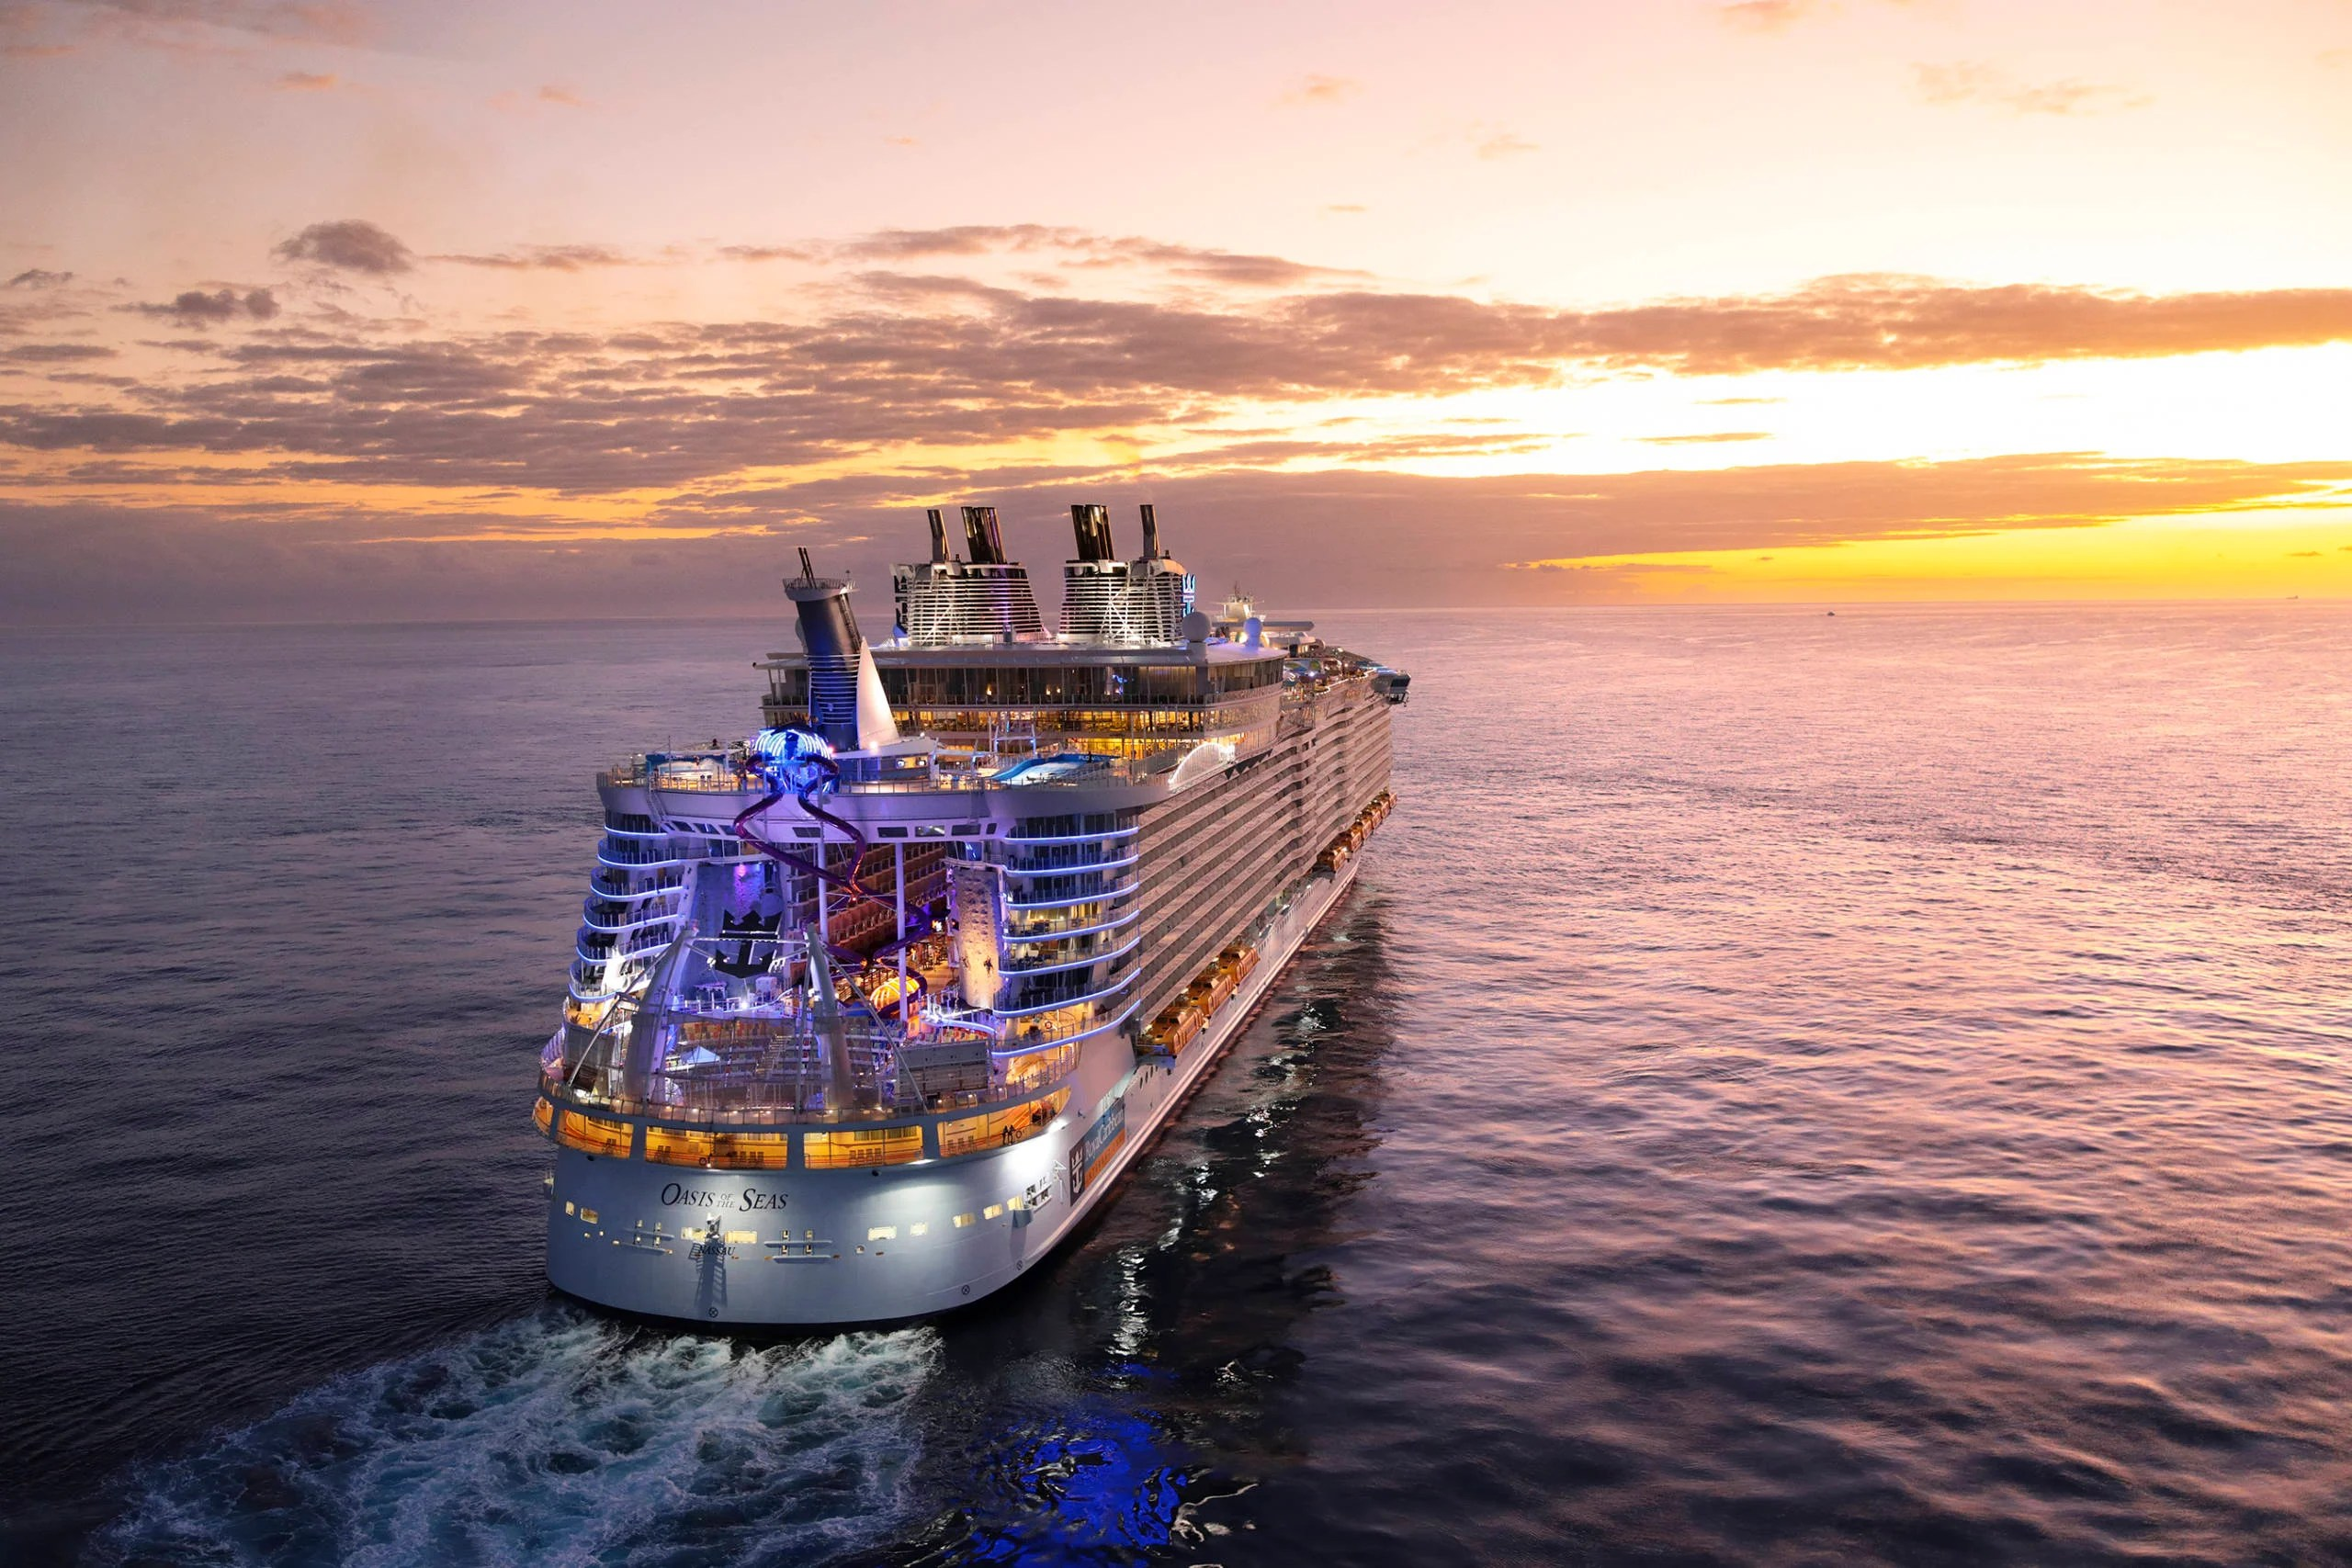 Coronavirus crisis: Cruises in some regions unlikely to resume for months